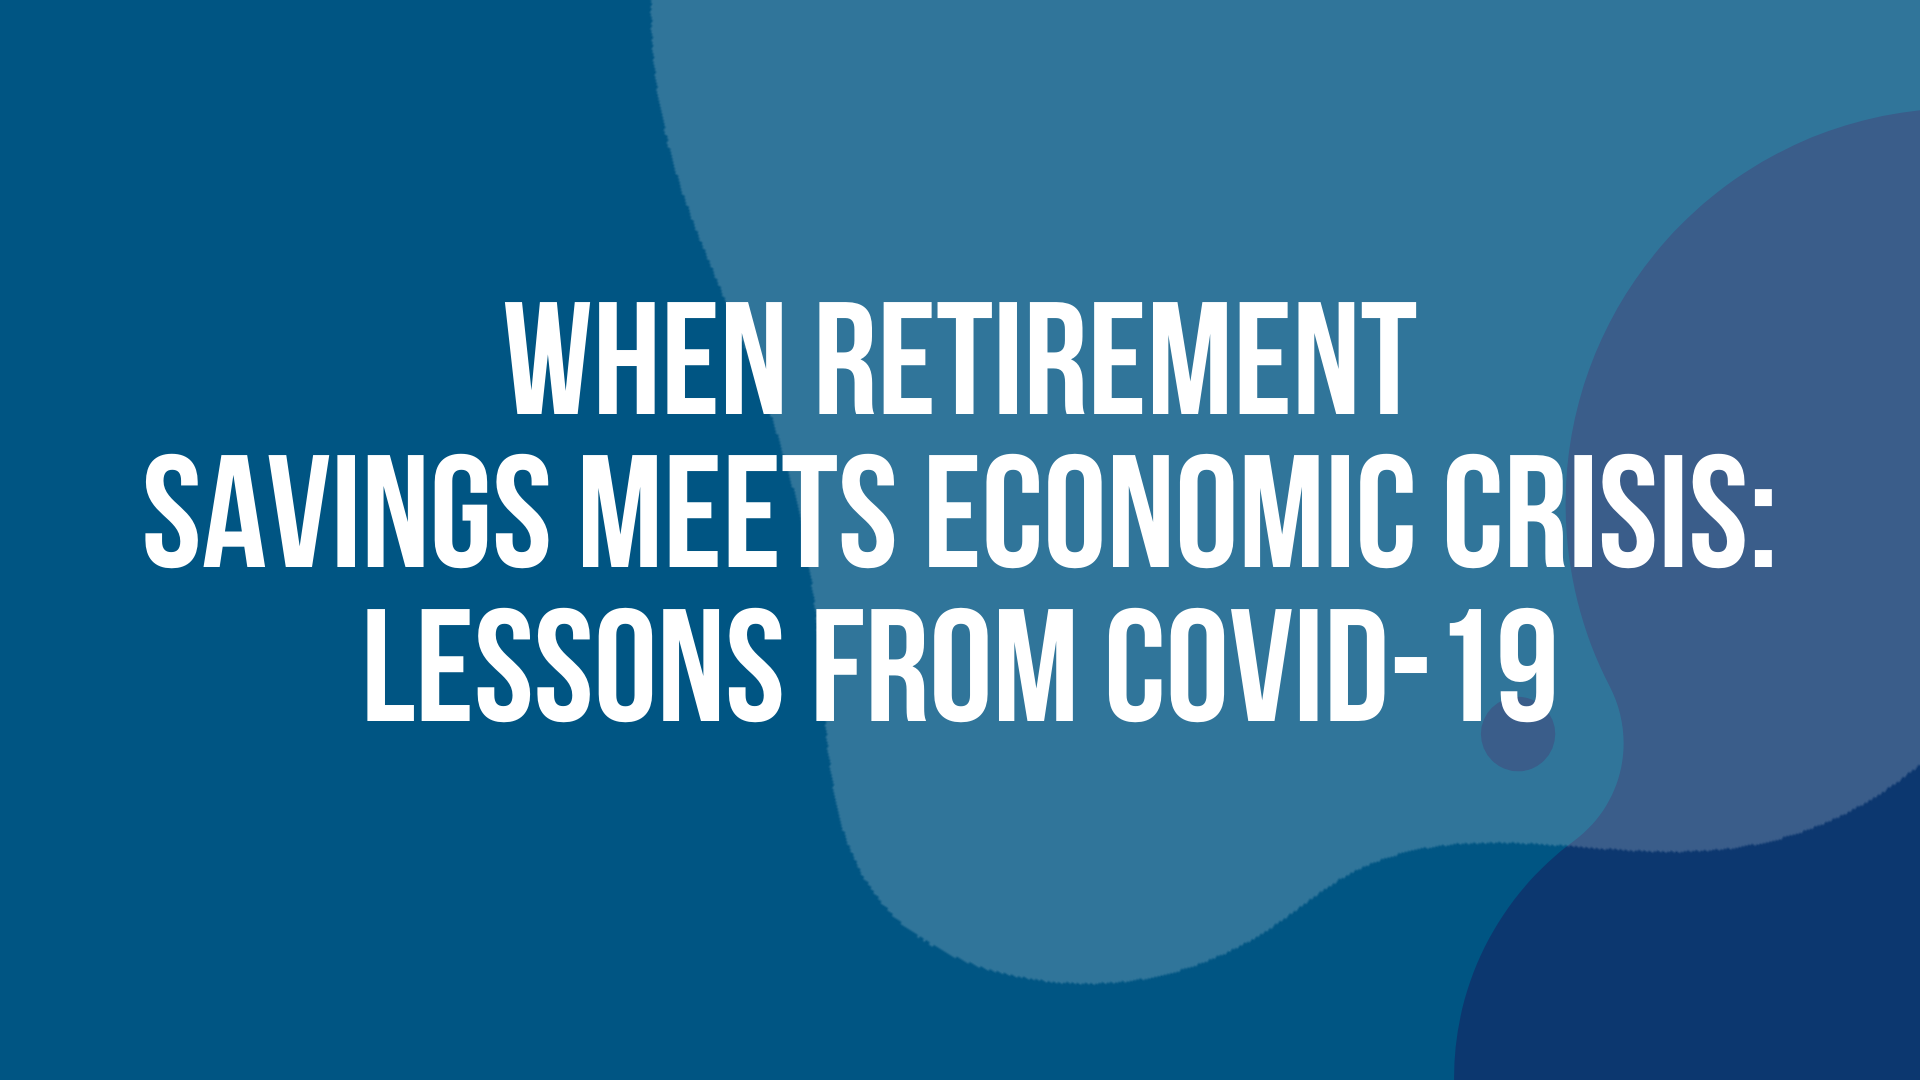 When Retirement Savings meets Economic Crisis